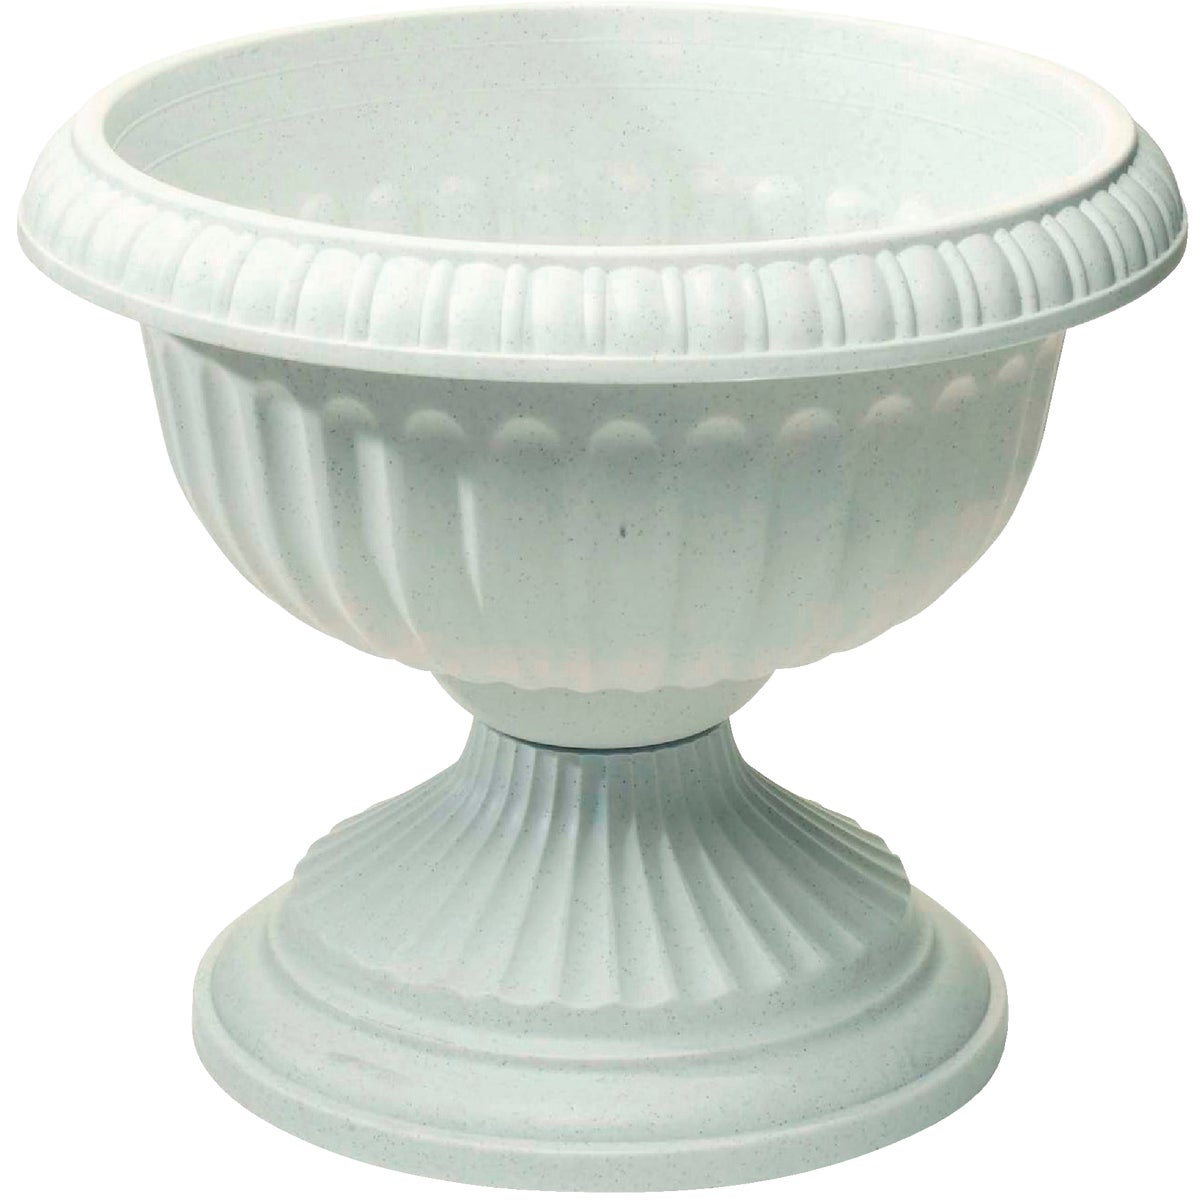 "12"" STONE POLY URN - 39126 by Novelty Mfg Co"